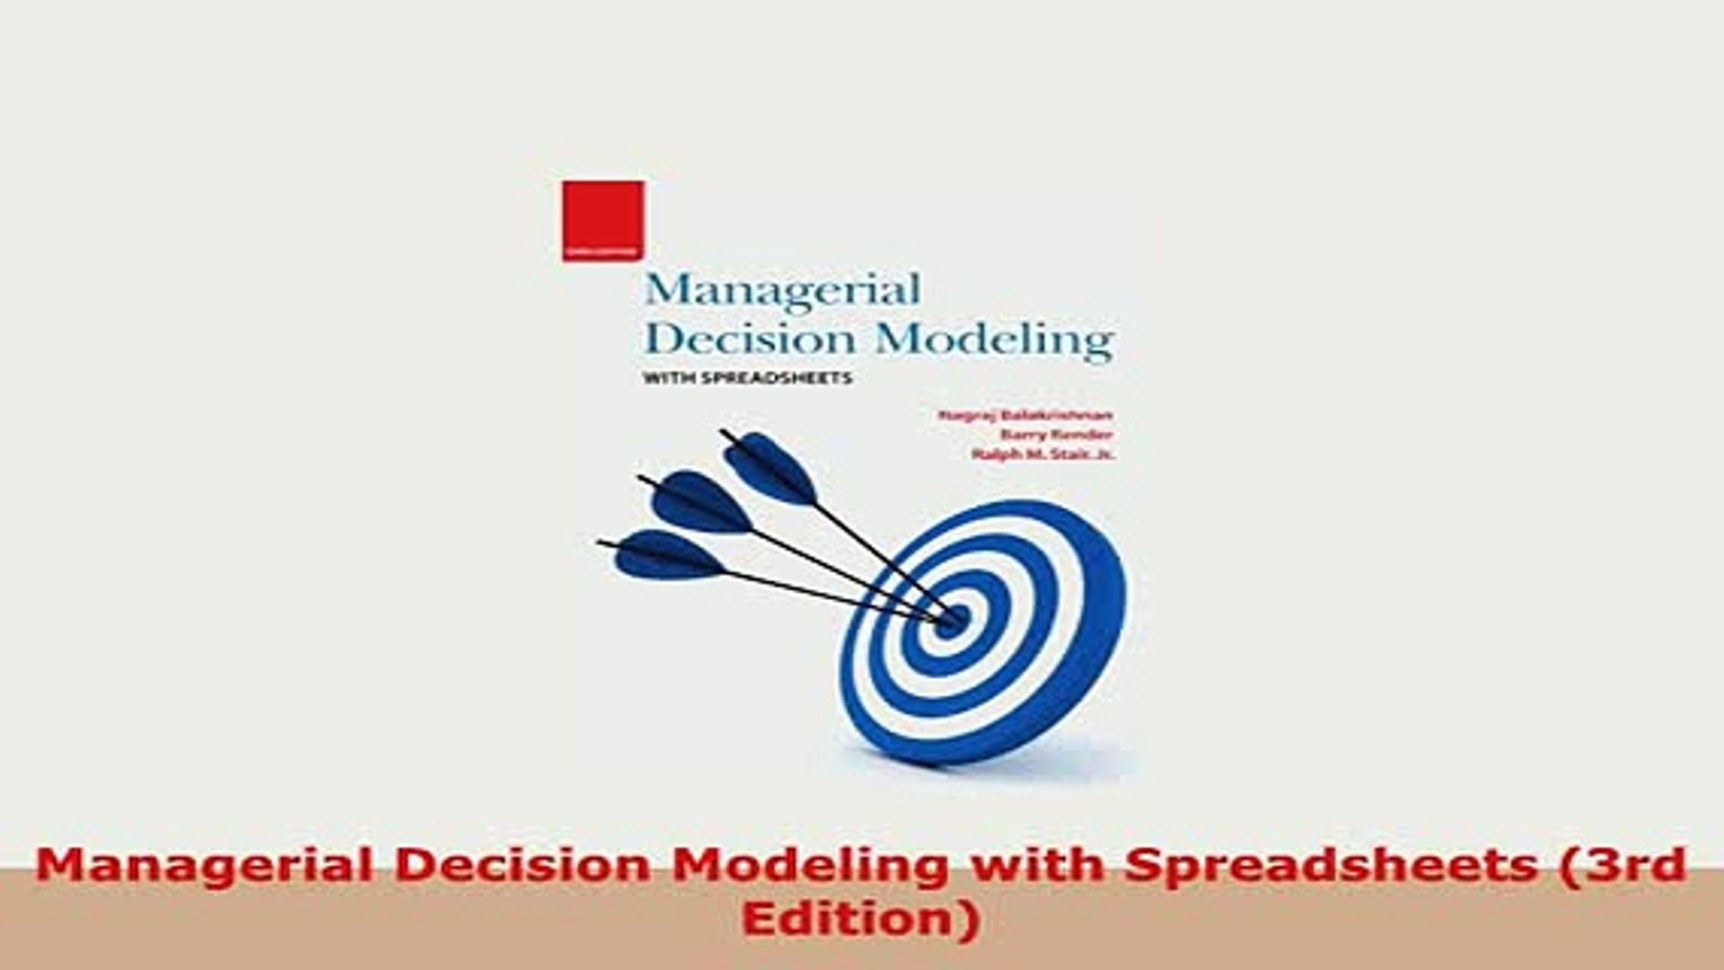 Managerial Decision Modeling With Spreadsheets 3Rd Edition Pdf Free Inside Pdf Managerial Decision Modeling With Spreadsheets 3Rd Edition Pdf